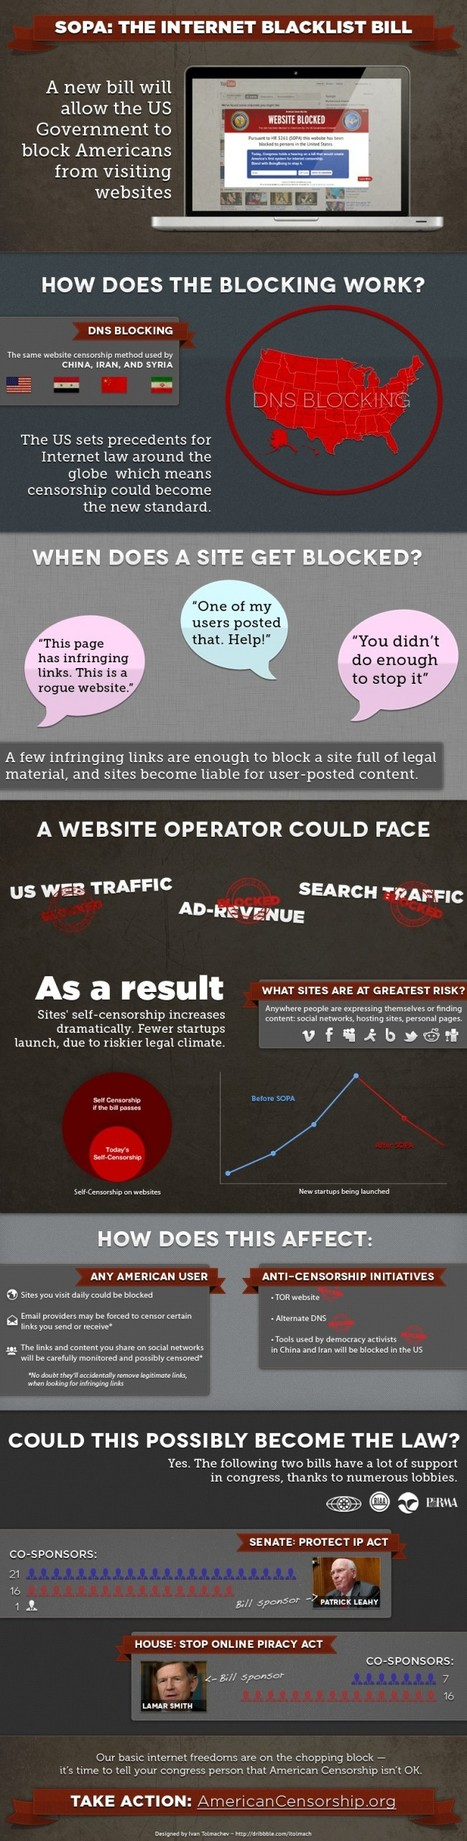 What is SOPA? [infographic]   Social Media (network, technology, blog, community, virtual reality, etc...)   Scoop.it